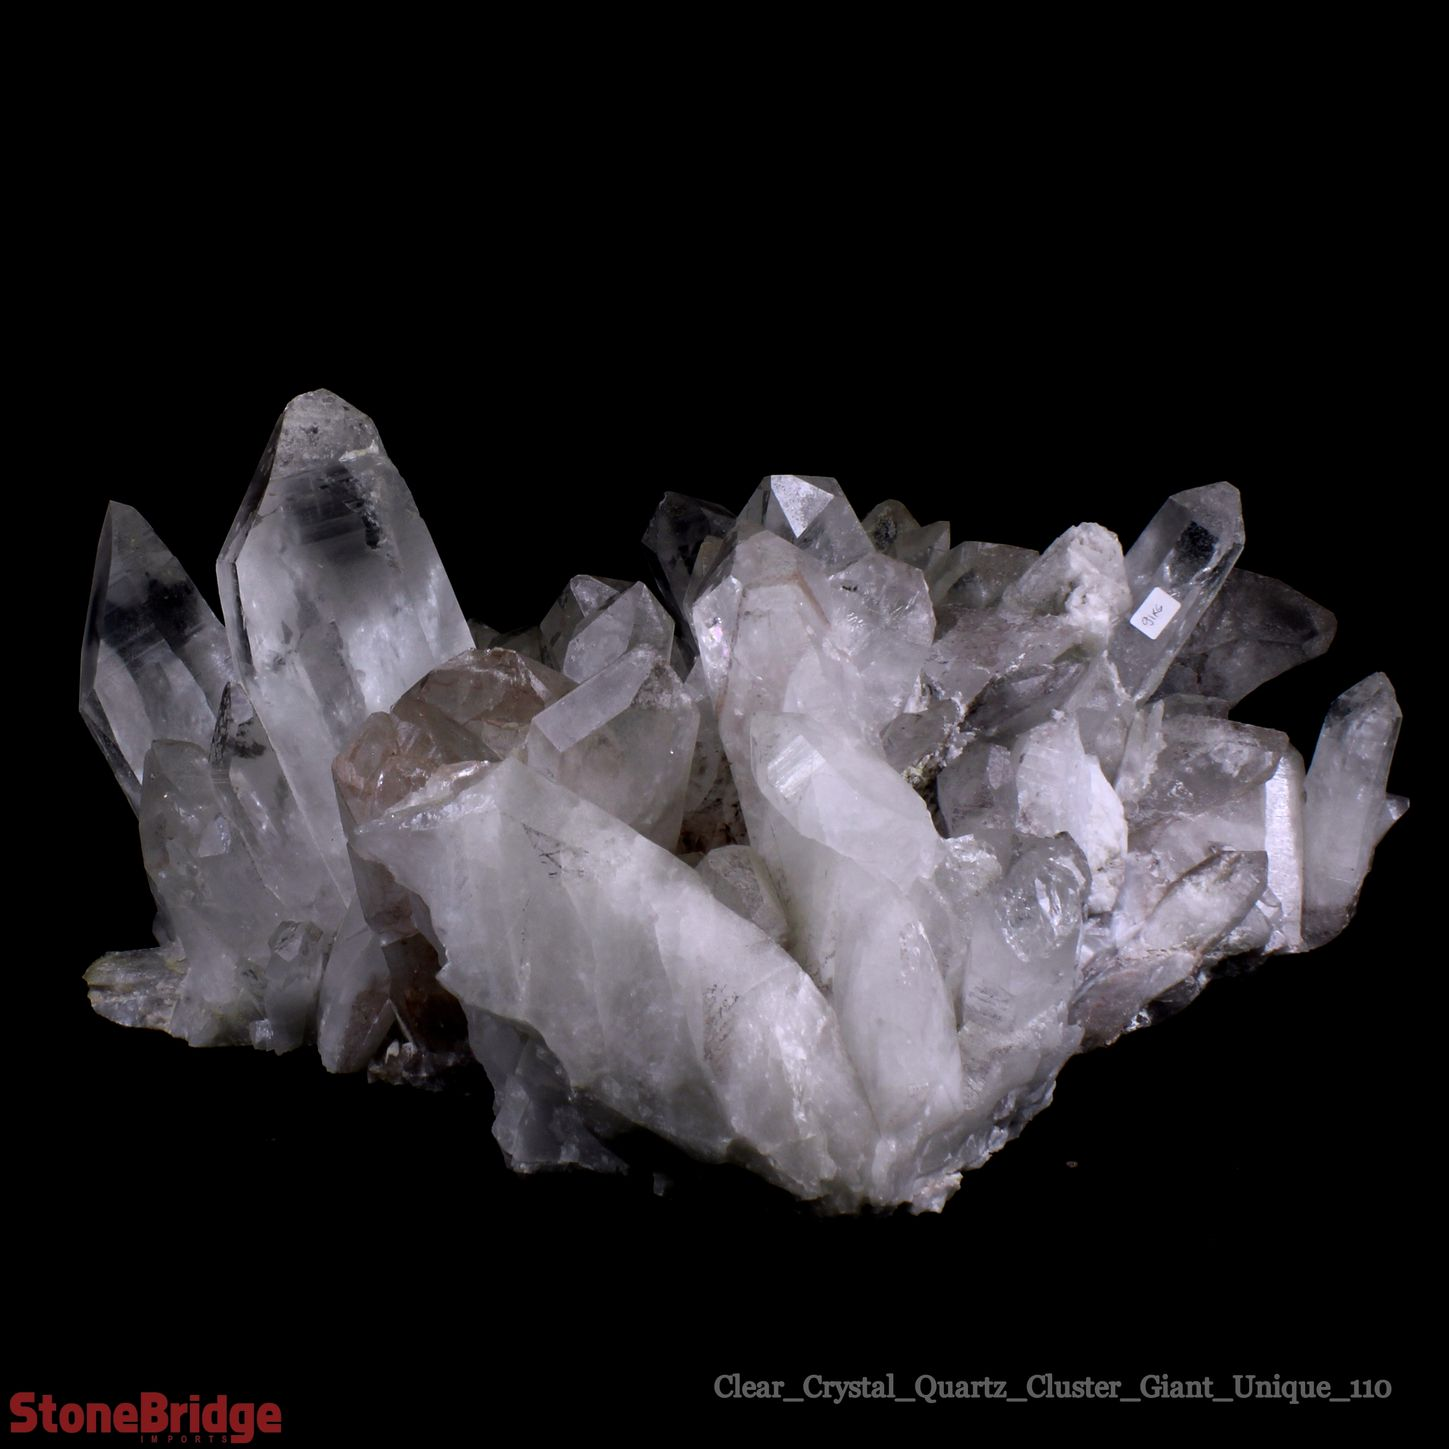 CLCRU110_Clear_Crystal_Quartz_Cluster_Giant_Unique_11011.jpg